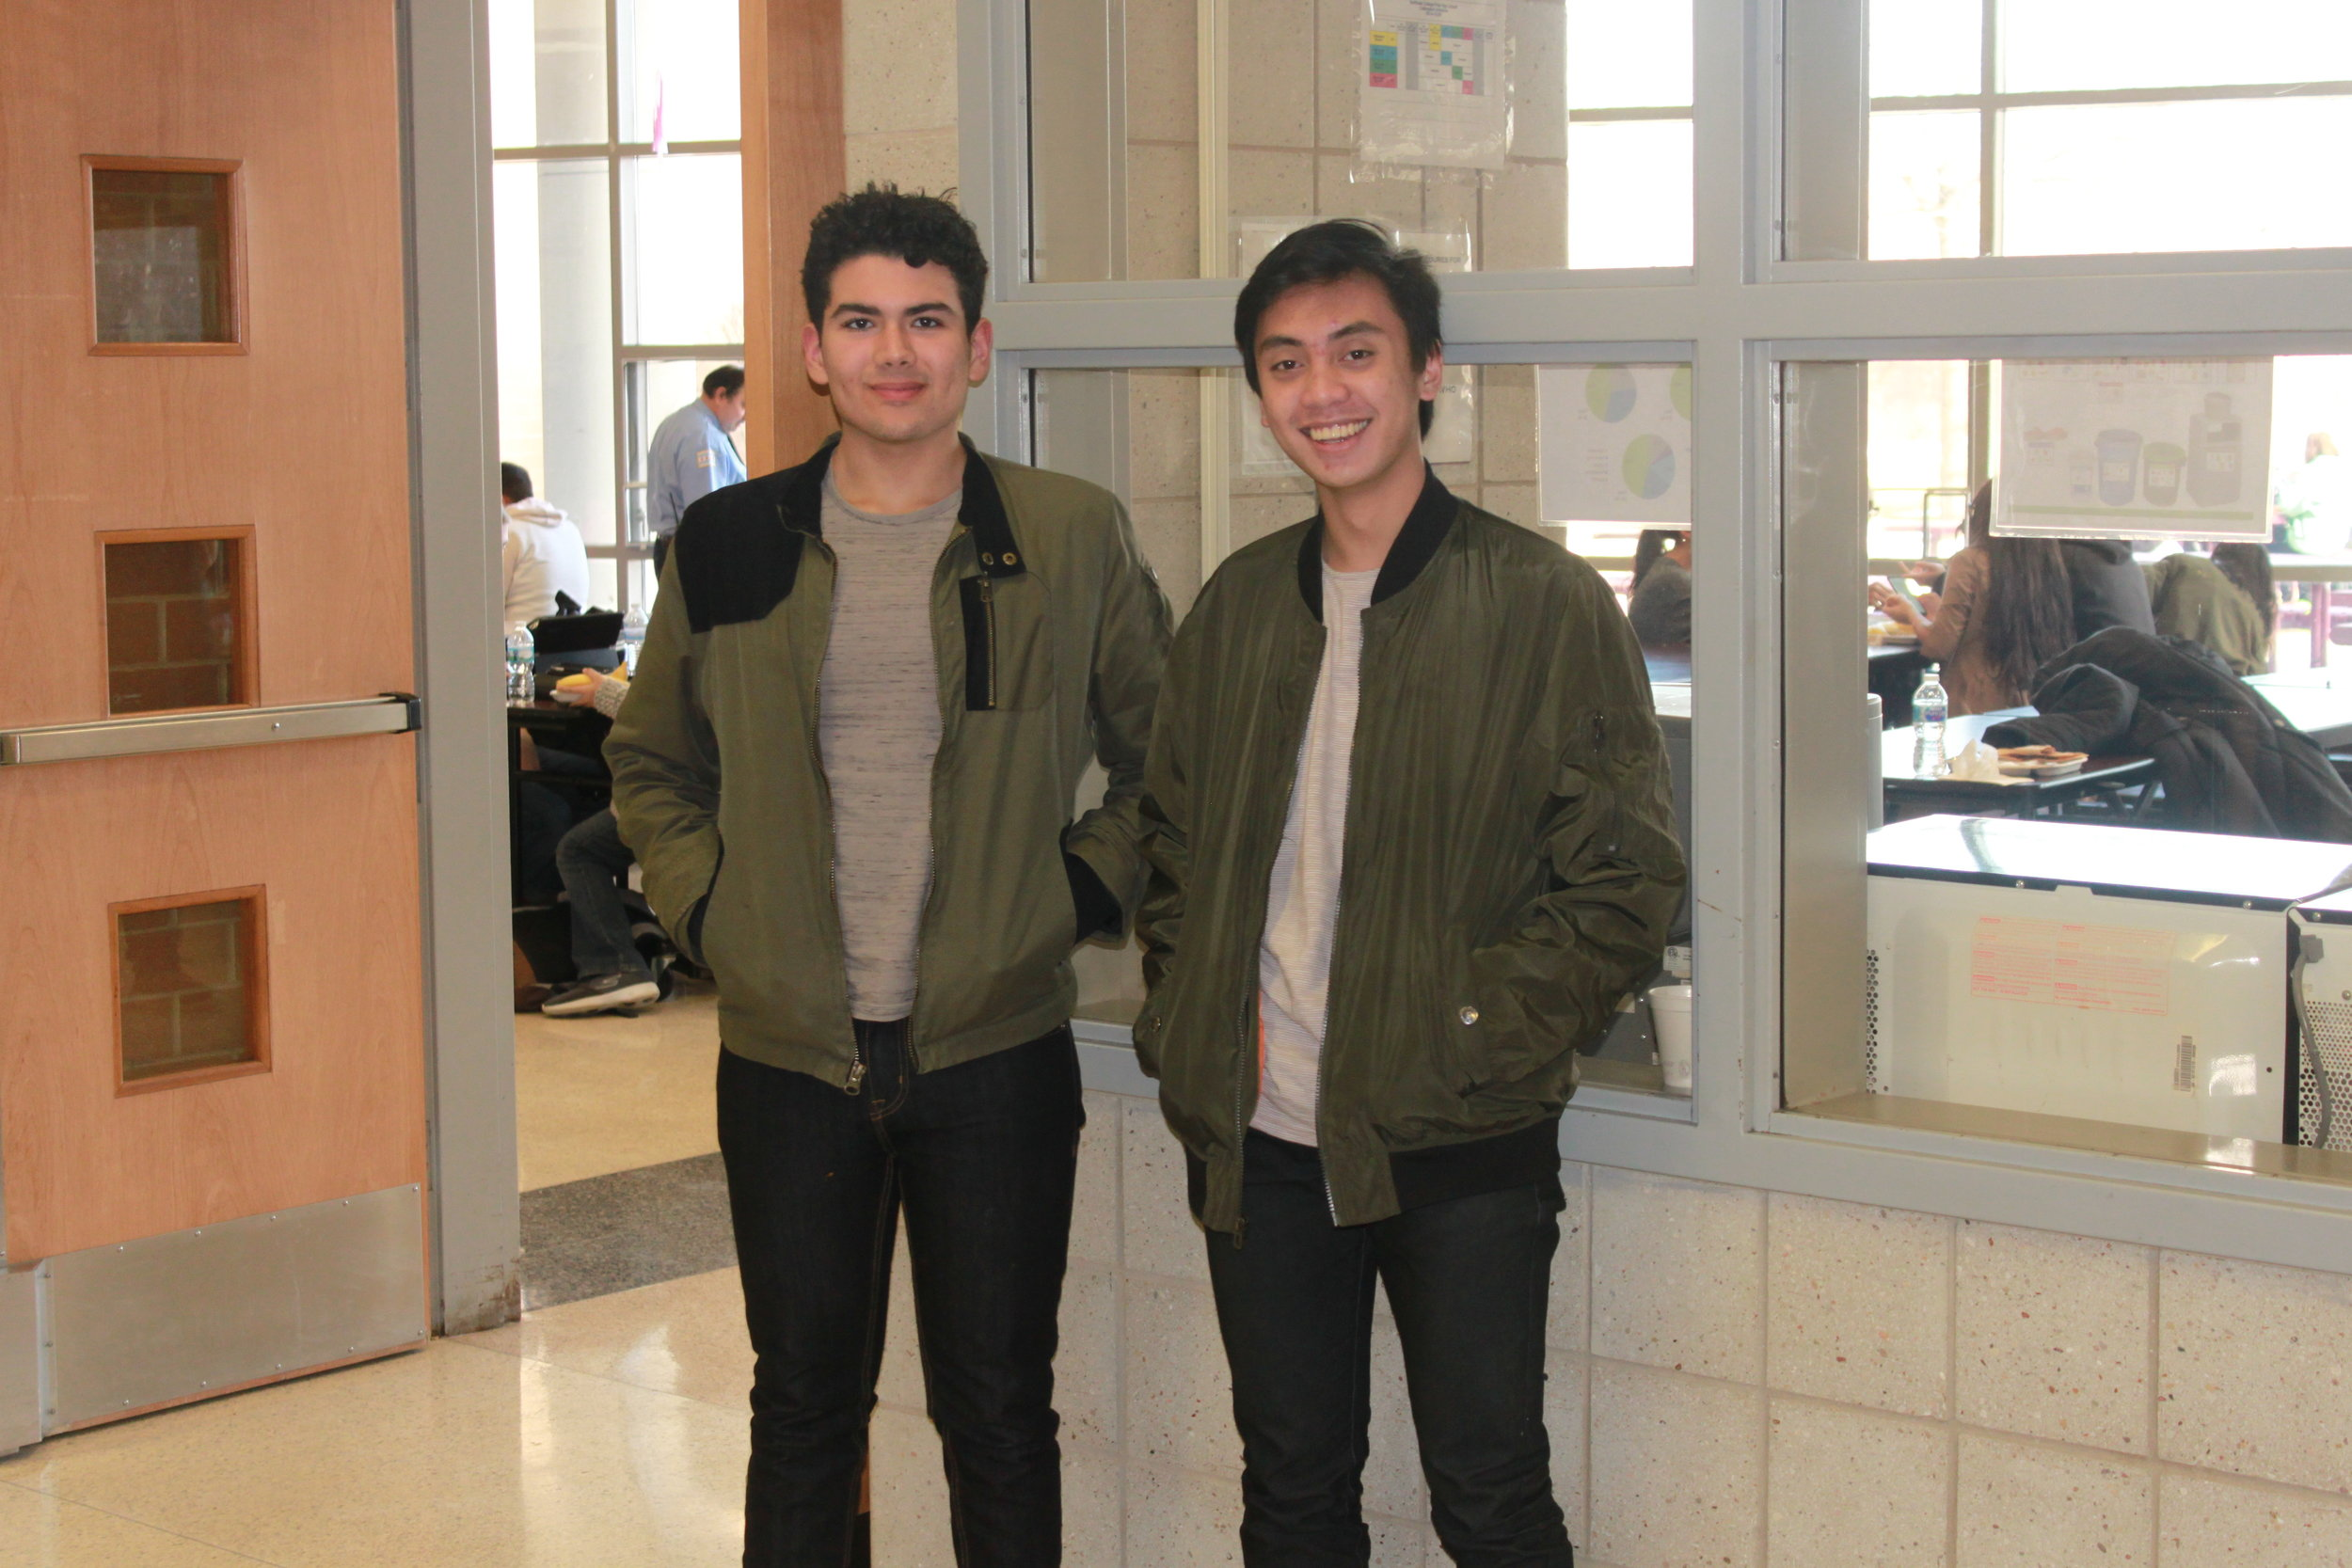 Oroin Perez and Resty Fufunan pose with their hands in the dark green jacket pockets.